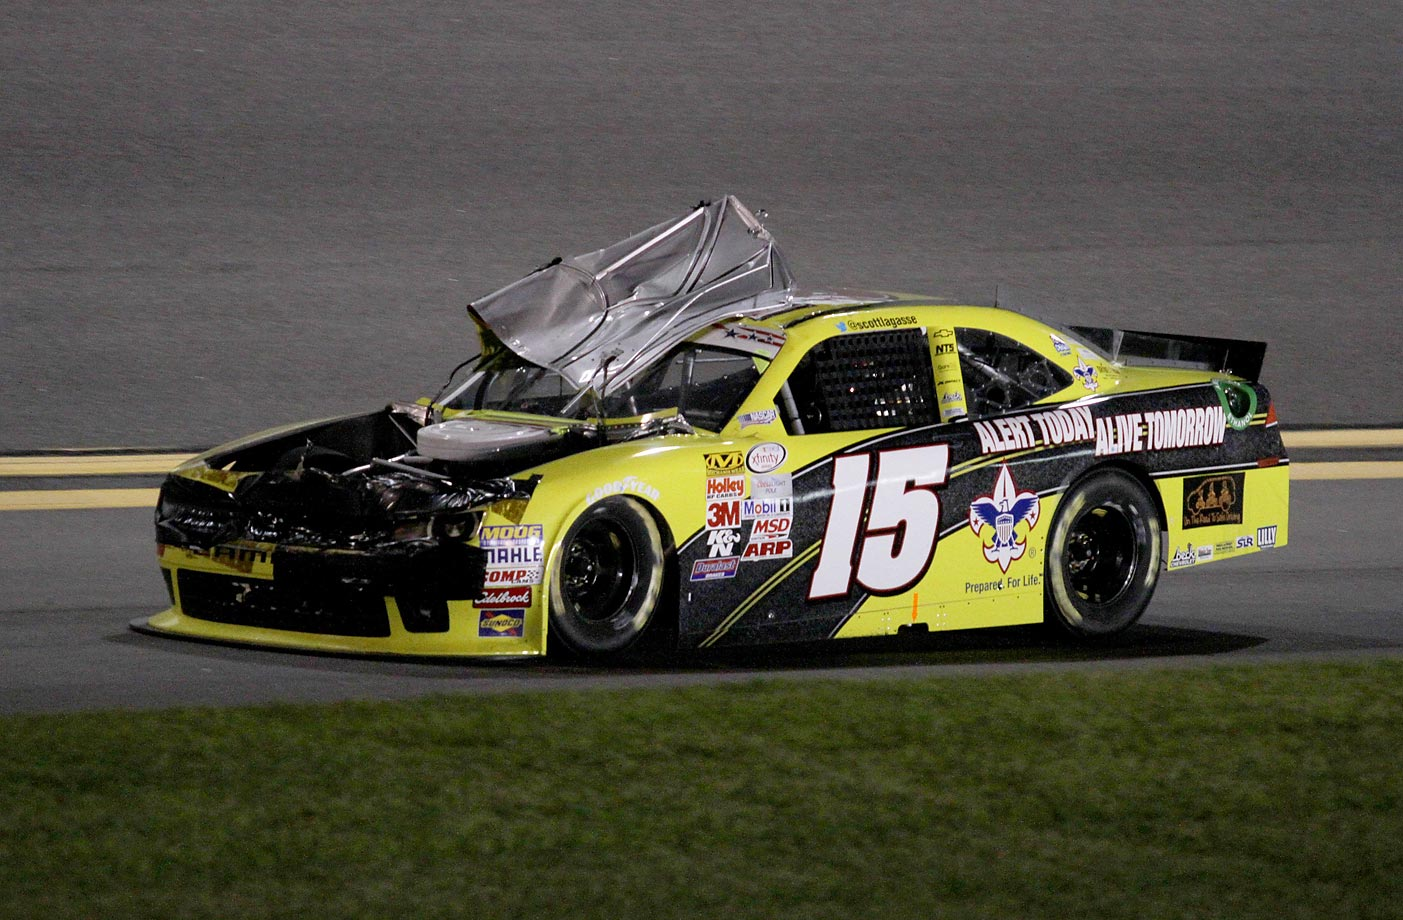 Scott Lagasse Jr. loses his hood during the NASCAR Xfinity Series Subway Firecracker 250 in Daytona.